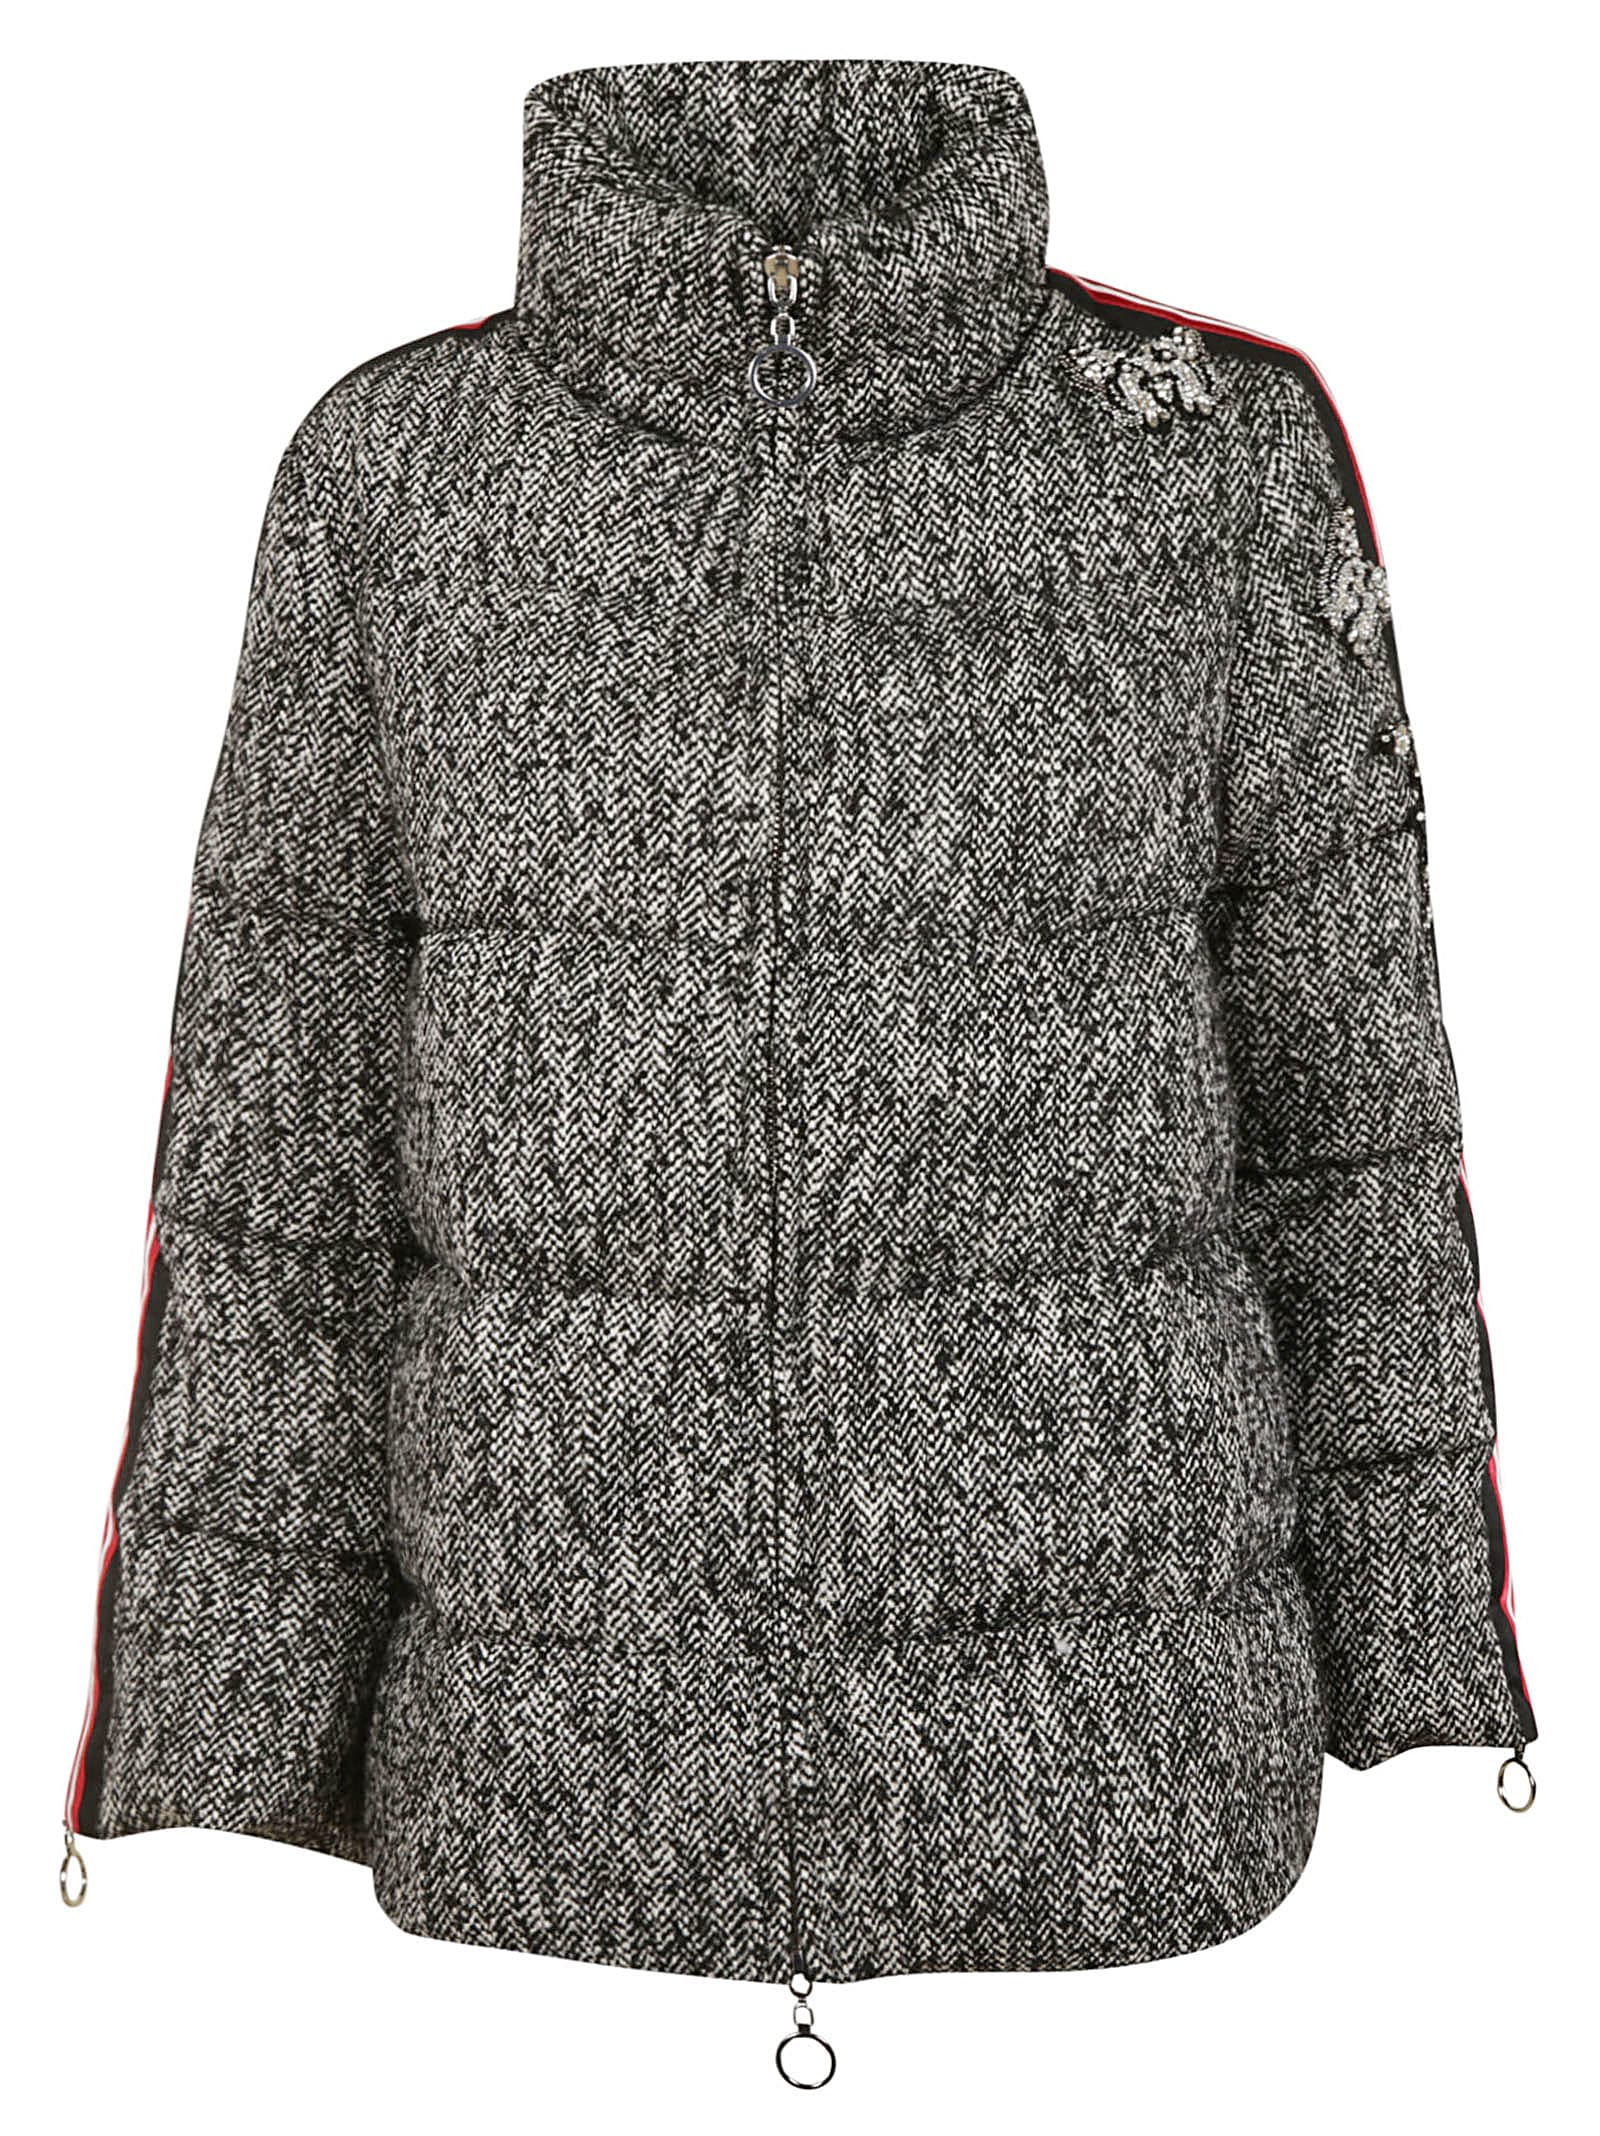 Ermanno Scervino Crystal Embellished Padded Jacket